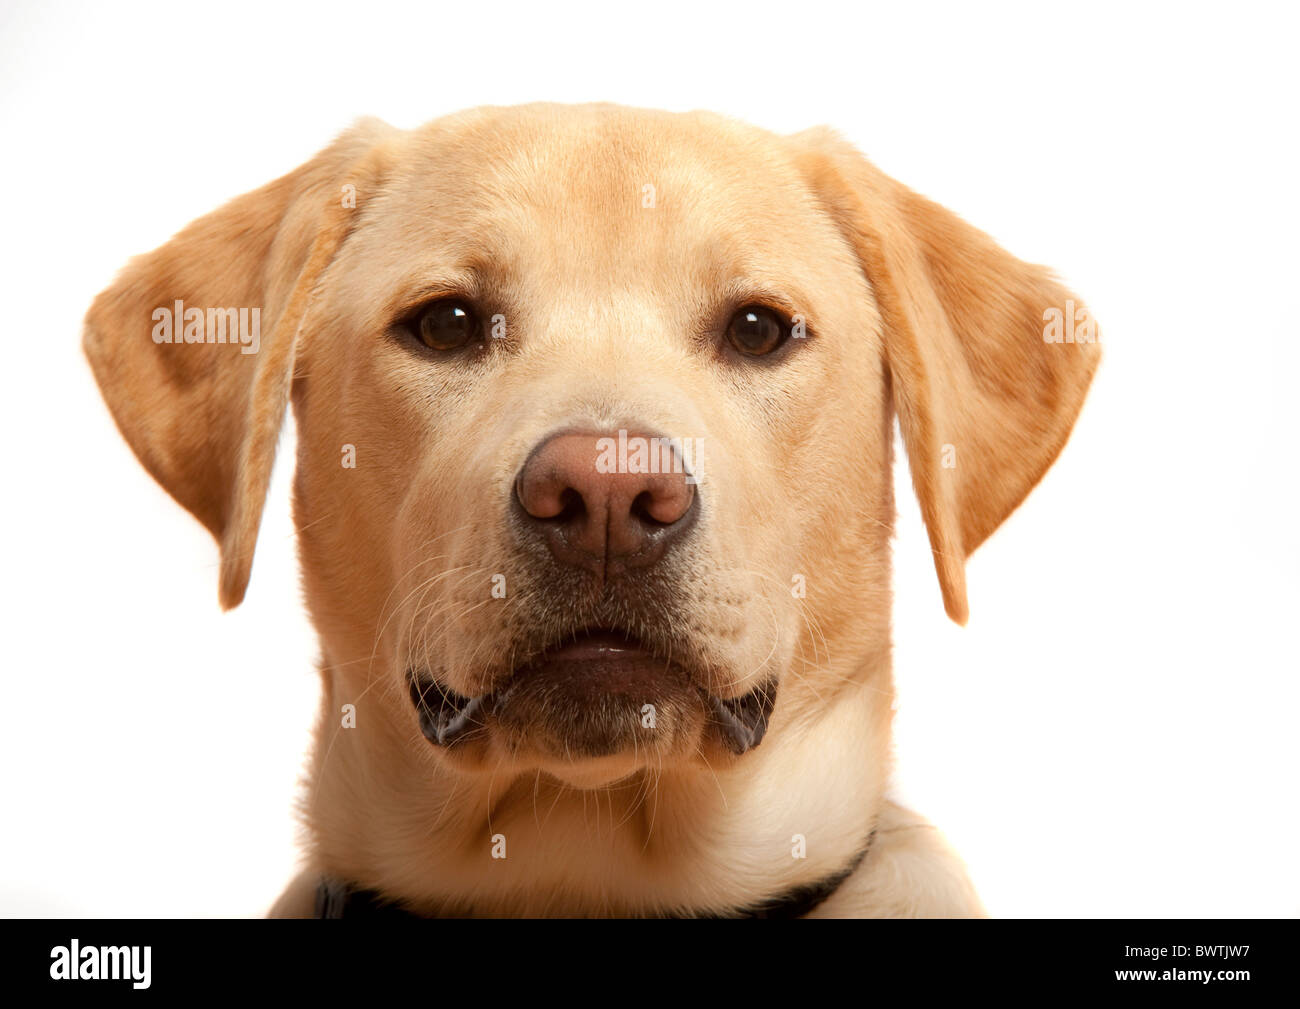 Labrador Retriever UK - Stock Image